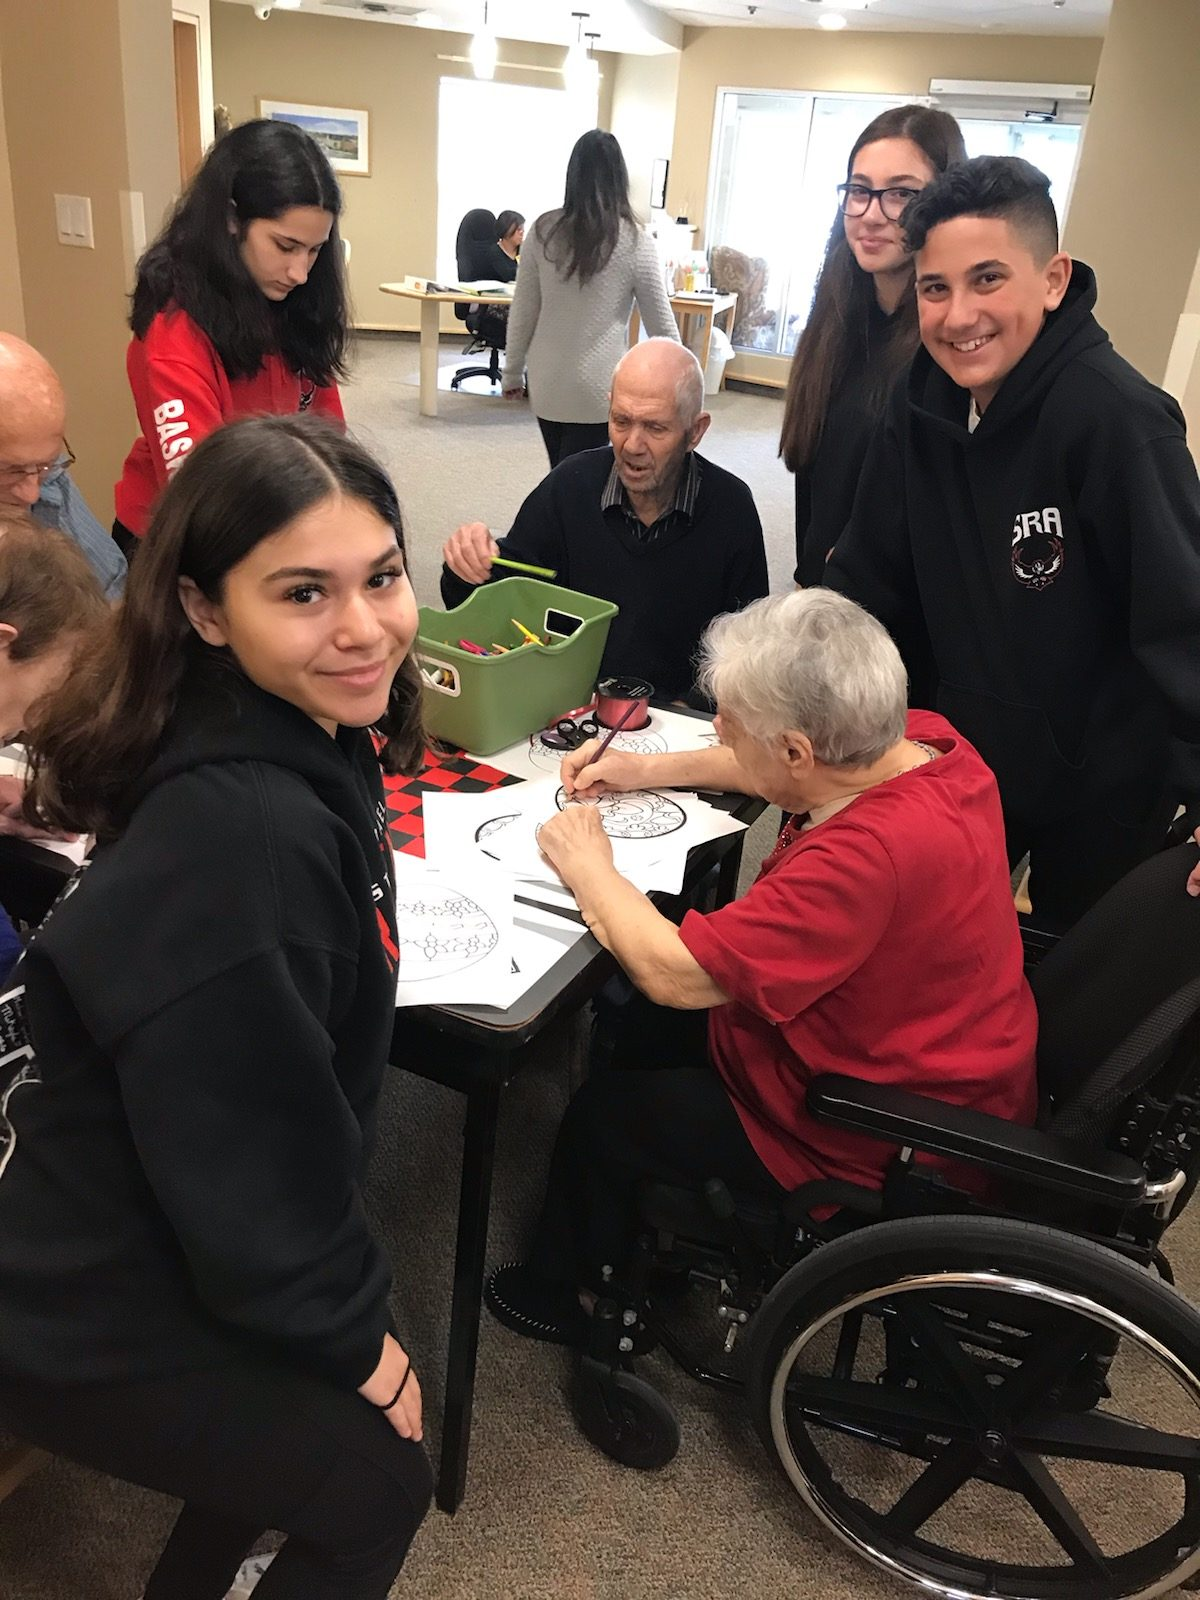 Seniors at long term care facility show appreciation for students